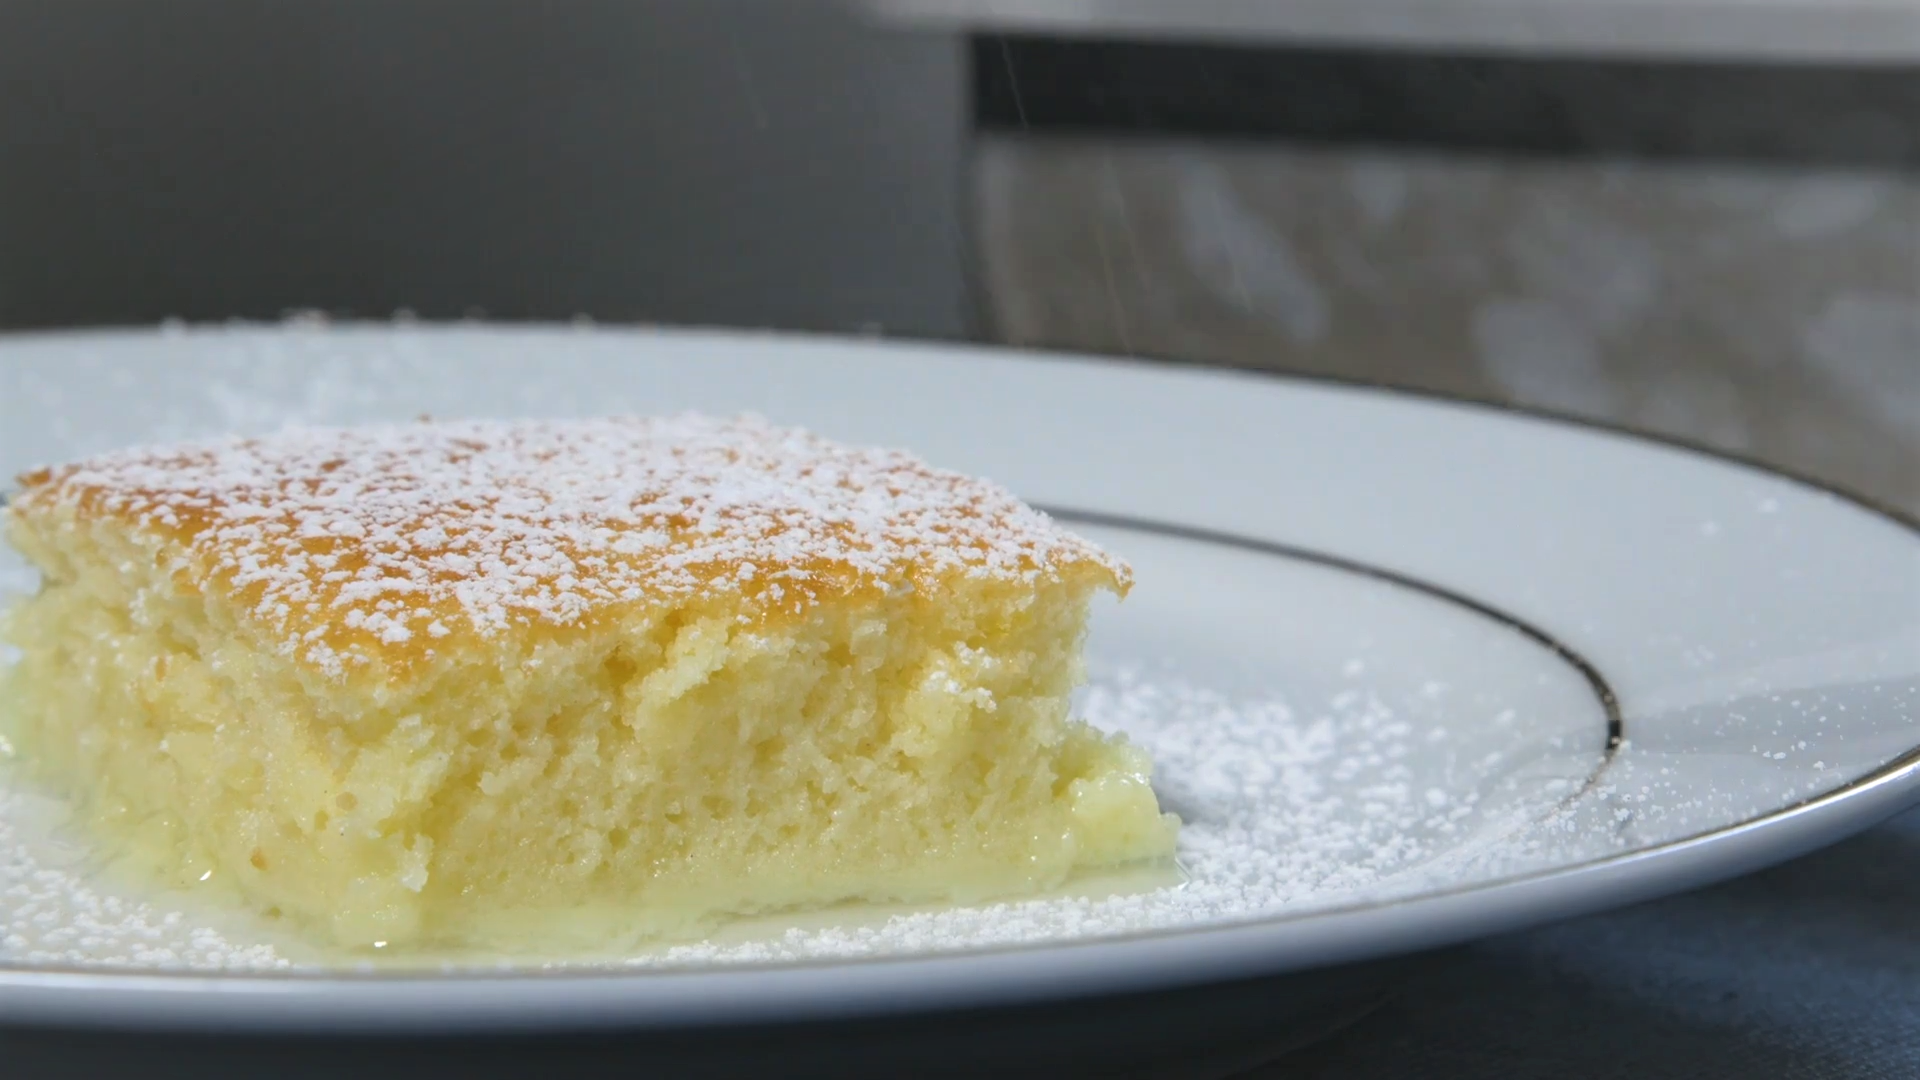 Slice of lemon pudding cake dusted with confectioners' sugar